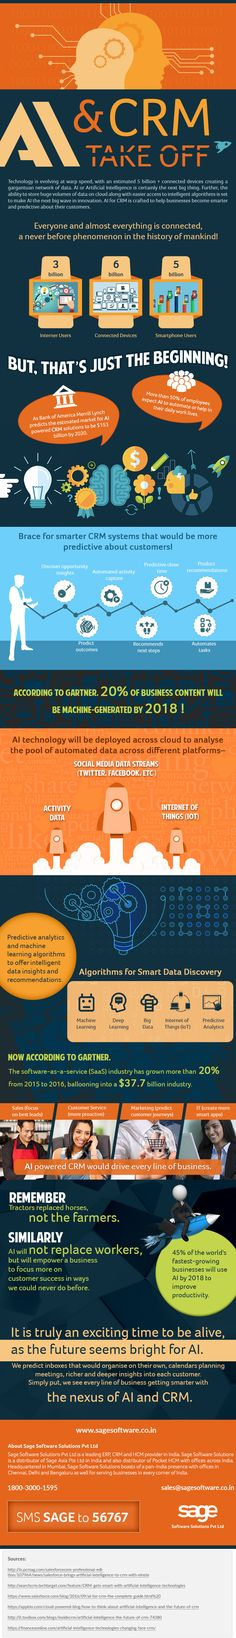 #AI & #CRM - What it means for businesses?   Check out this cool infographic here.  #IoT #BigData #MachineLearning